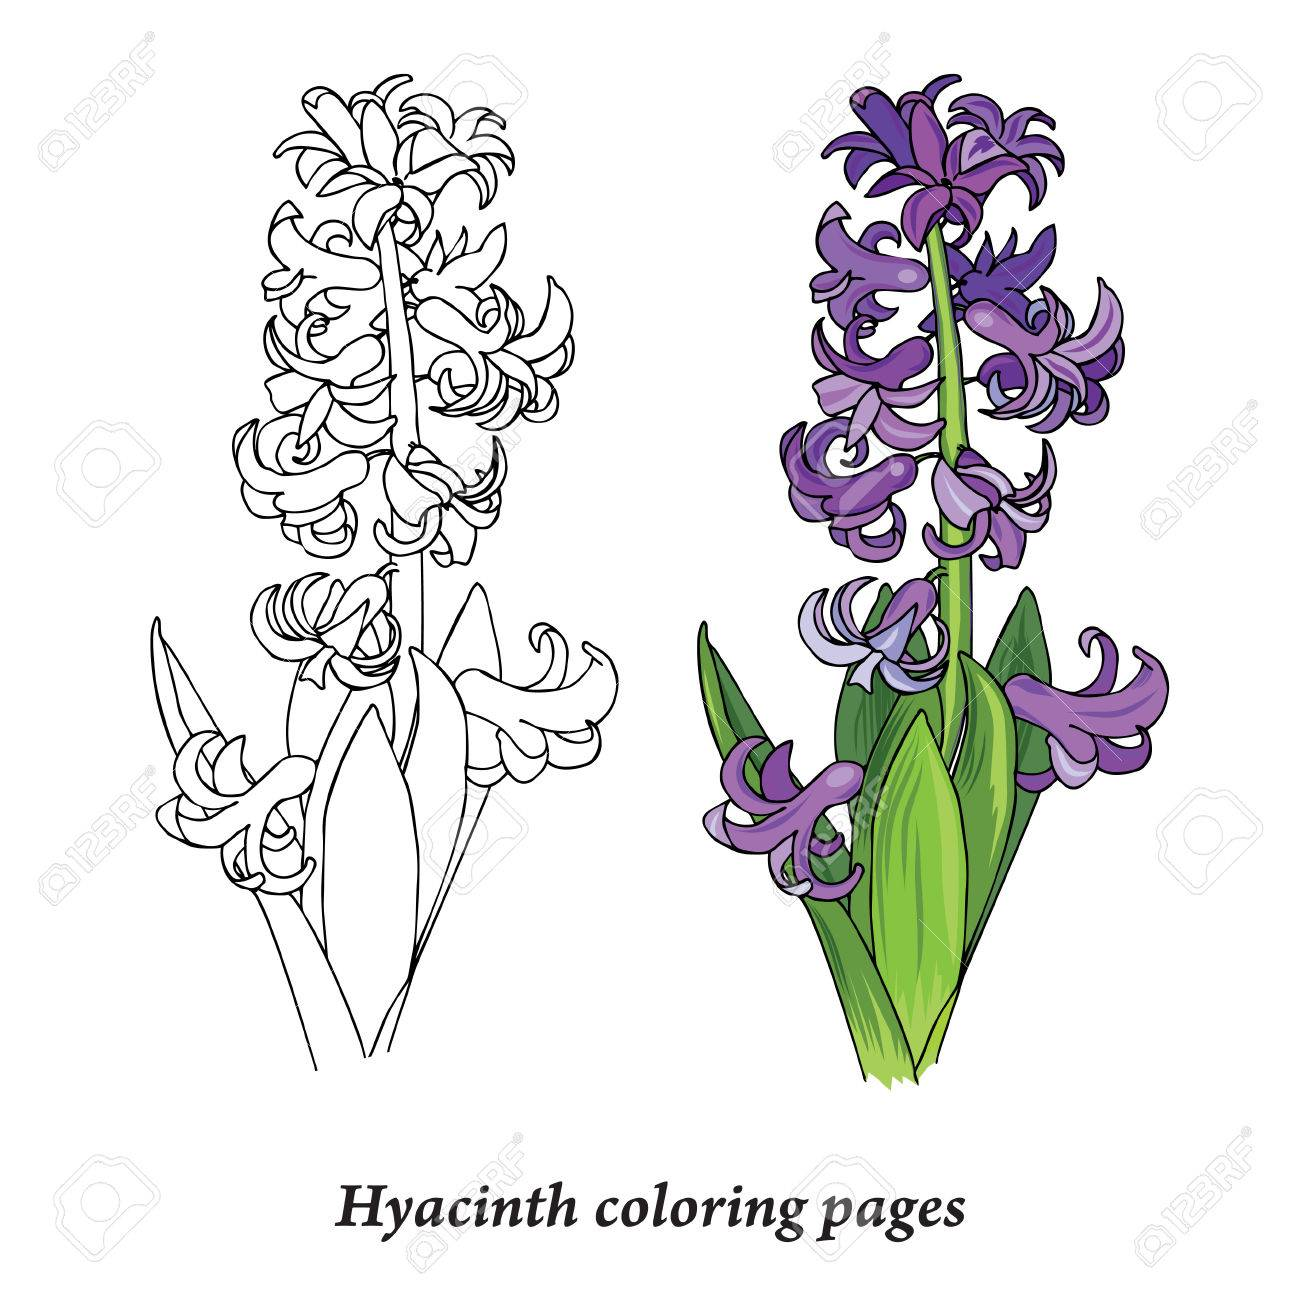 Hyacinth Coloring Pages Spring Flower Bulbous Plant Vector